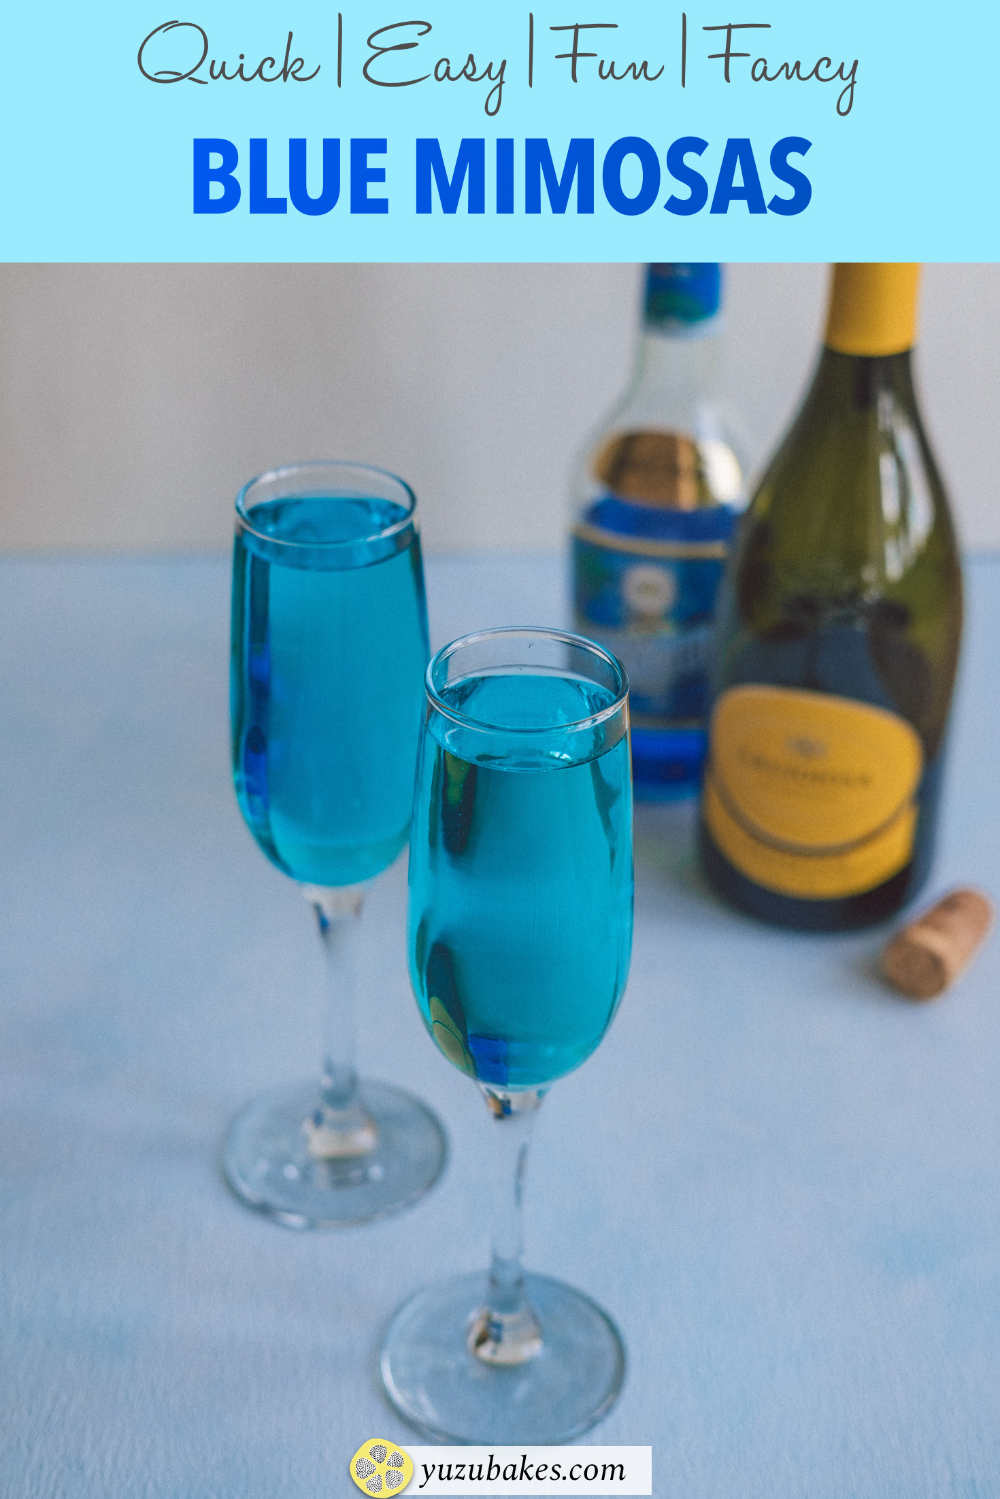 Blue Mimosa Tiffany Mimosa Recipe In 2020 Mimosa Blue Mimosa Recipe Interesting Food Recipes